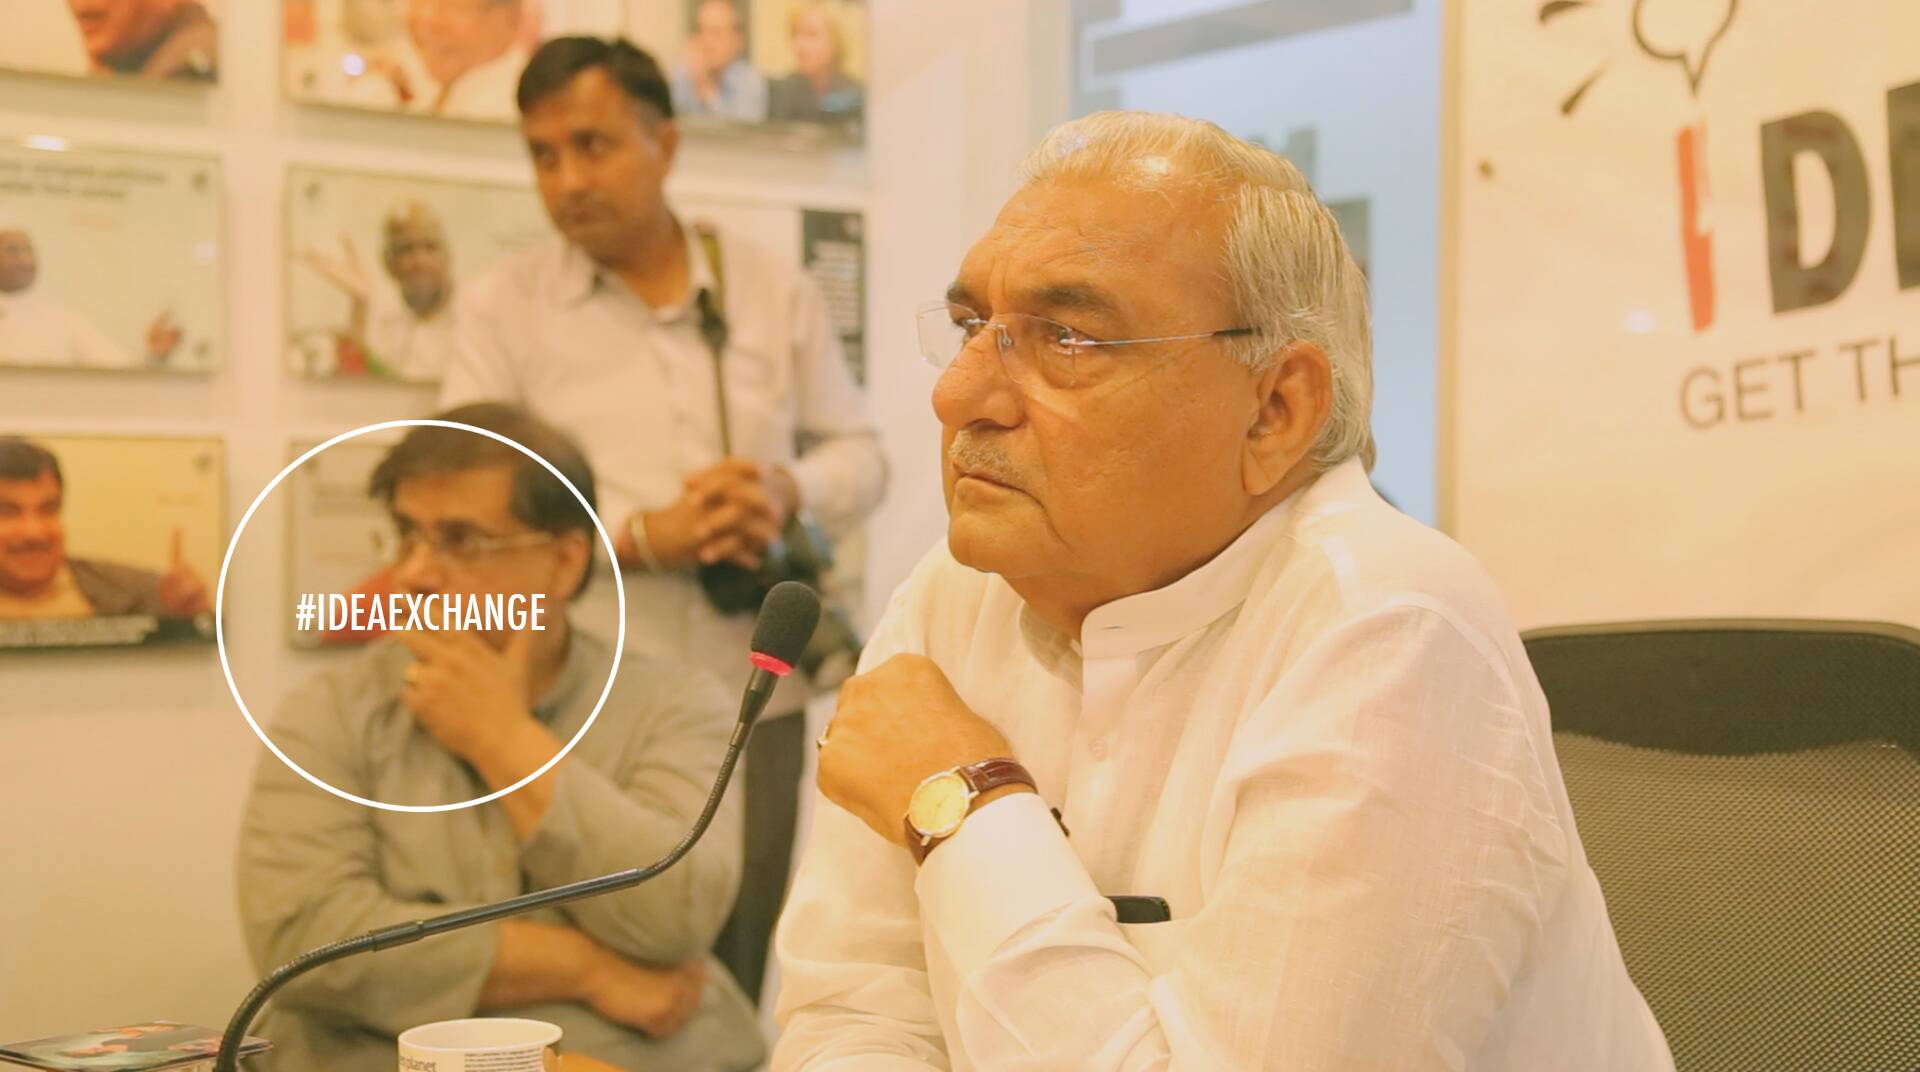 As a partyman, those who've left the Congress,  it is good riddance: Bhupinder Singh Hooda